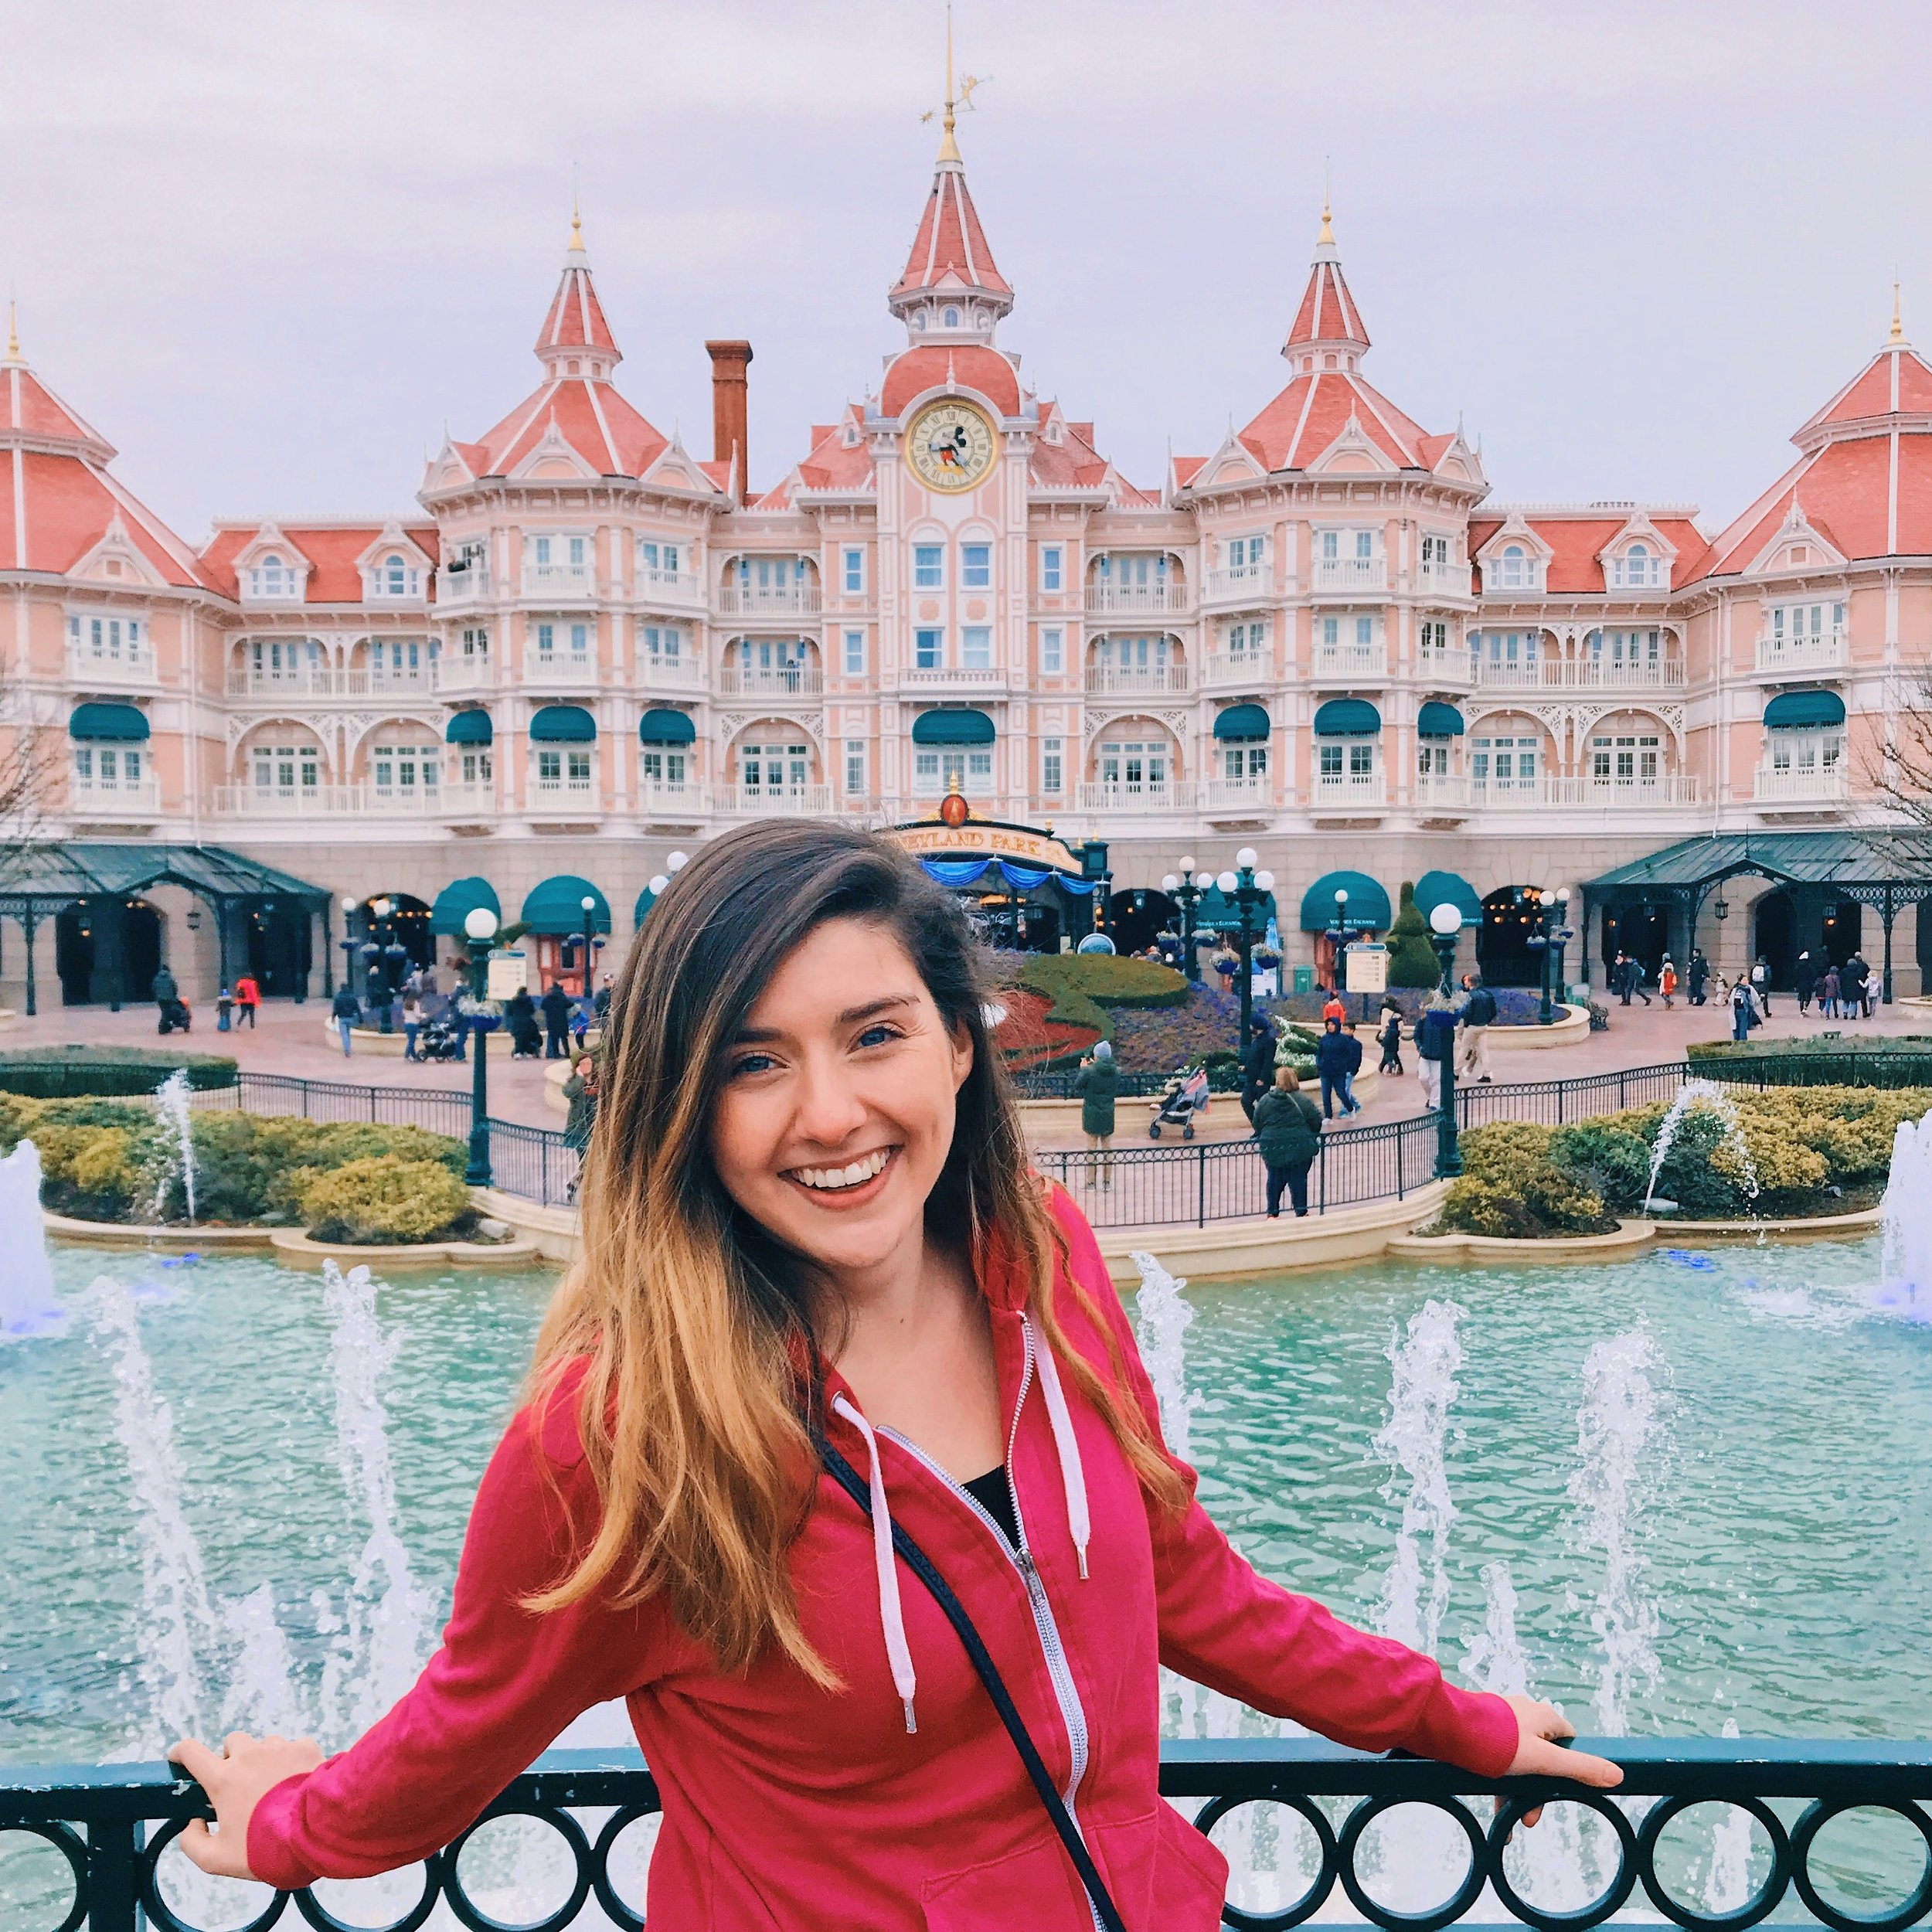 All smiles at Disneyland Paris, my 3rd Disney Park in 6 months.